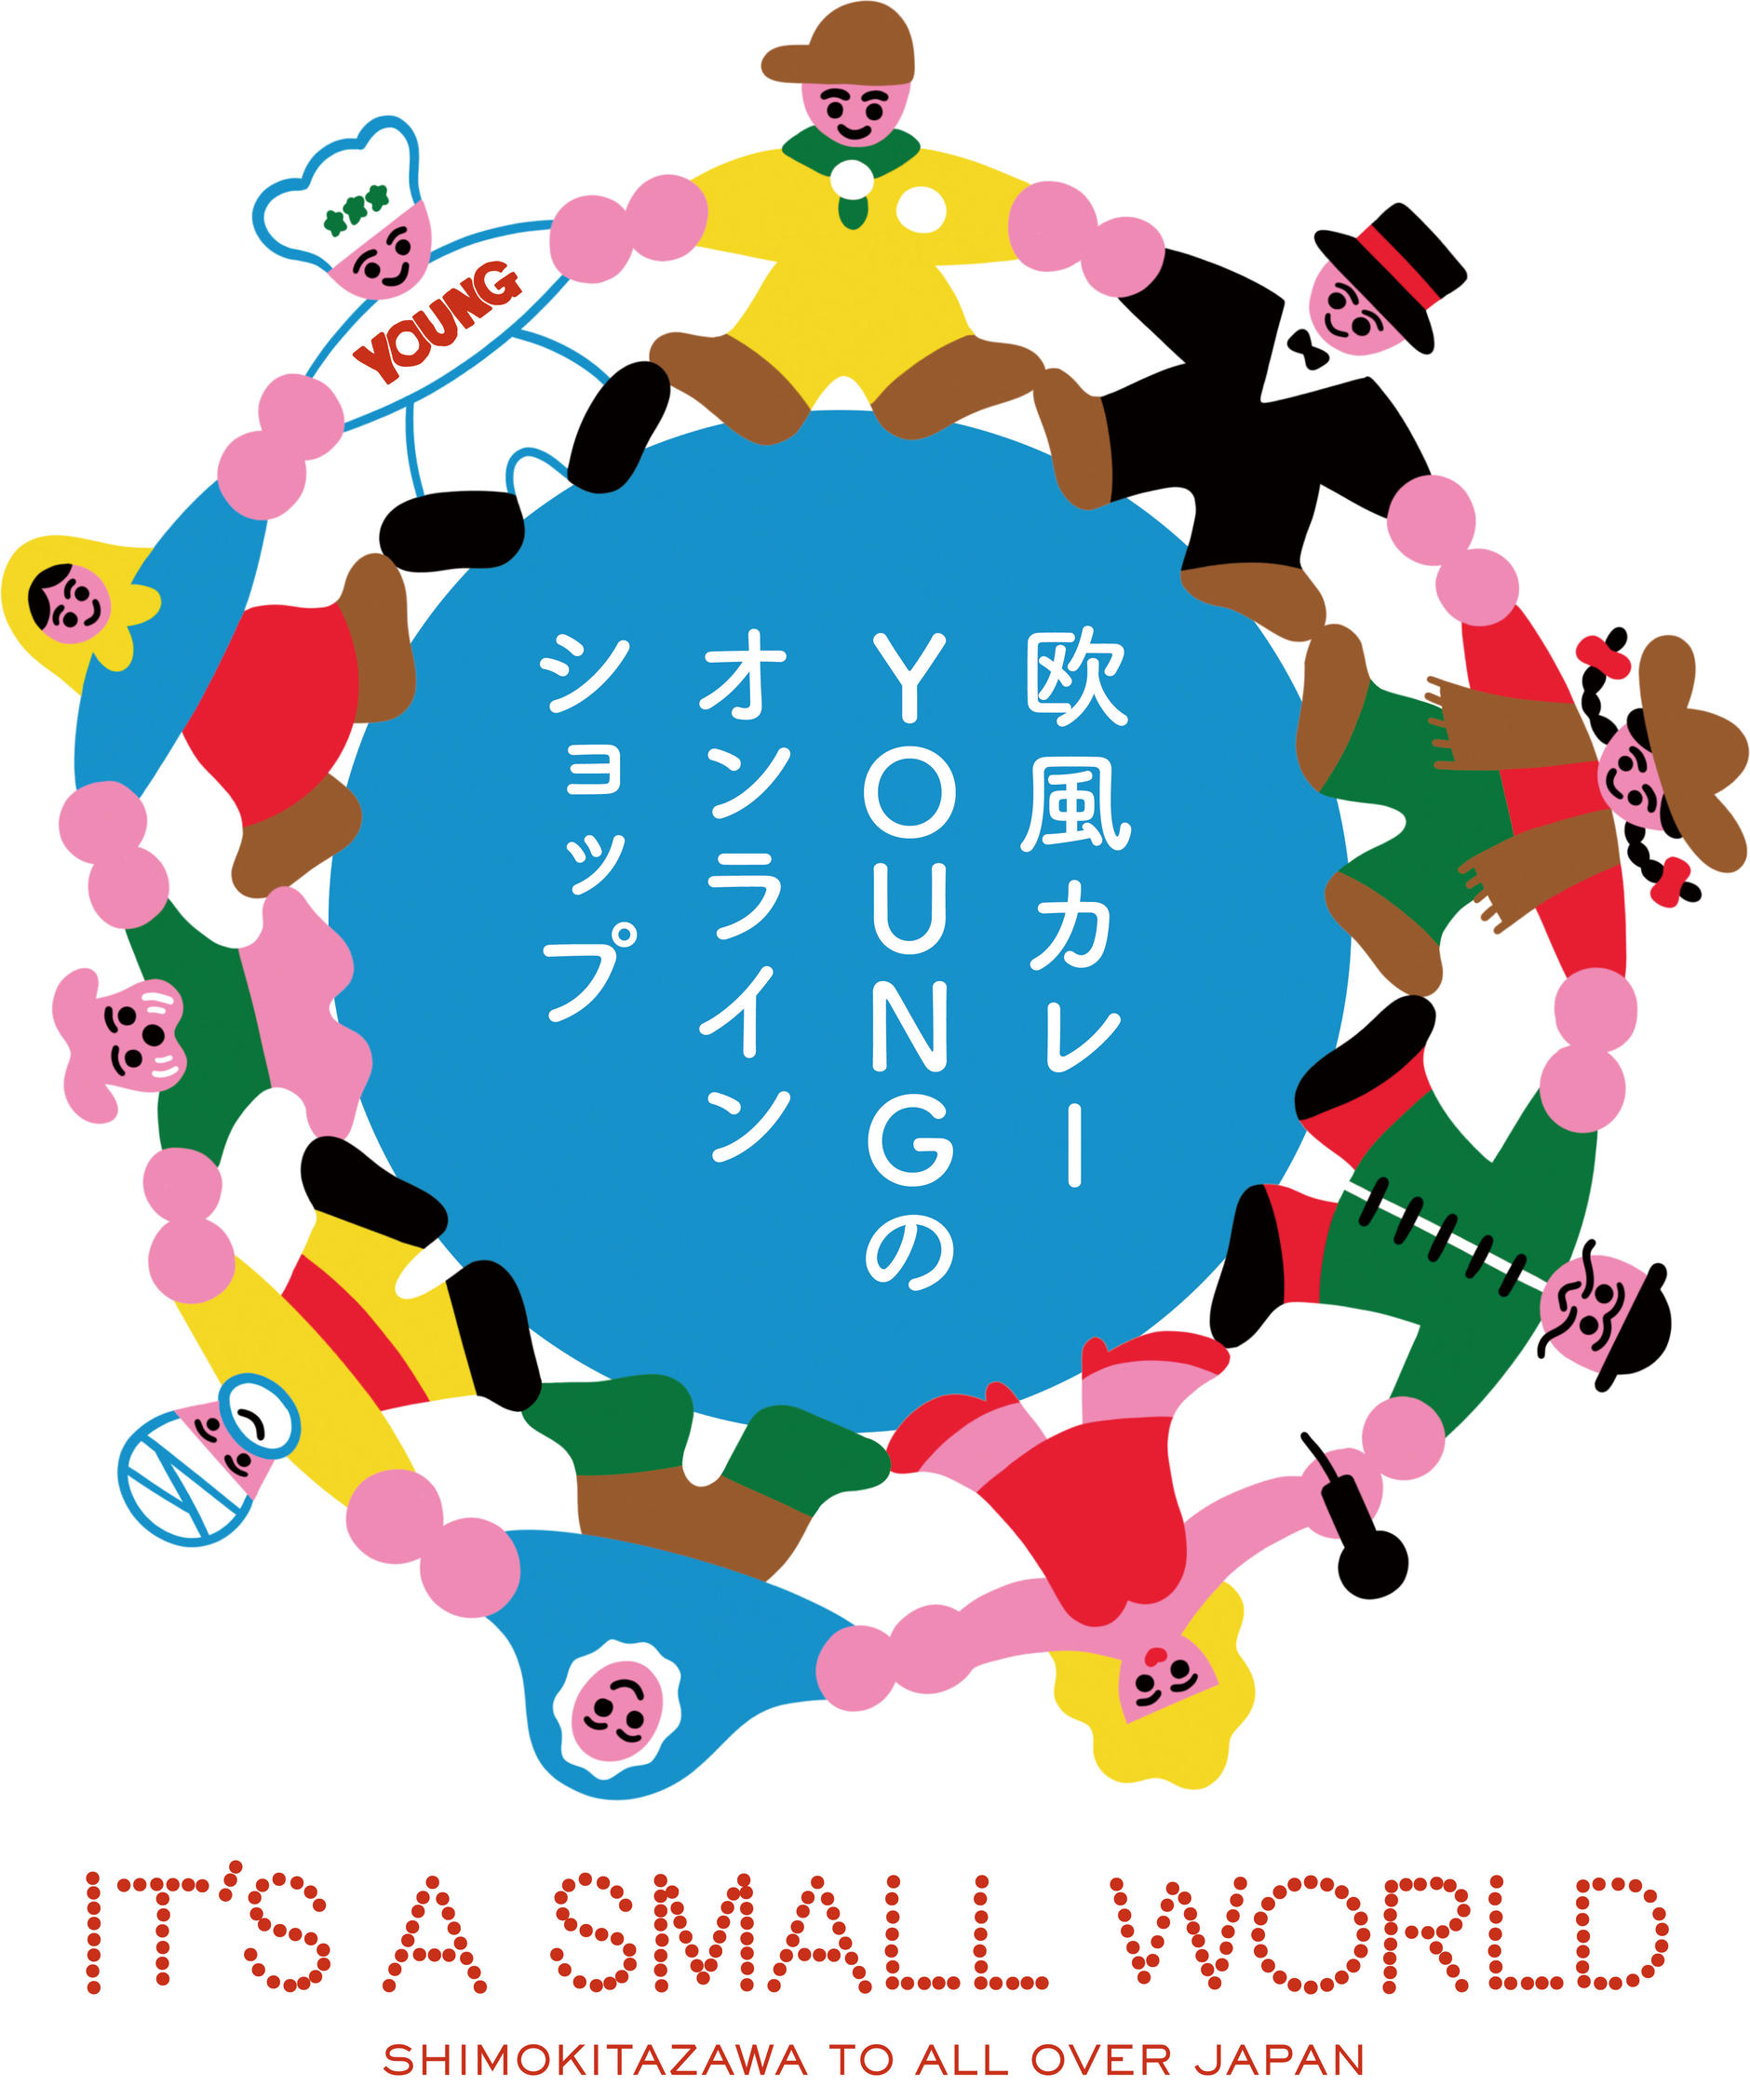 IT'S A SMALL WORLD by YOUNG